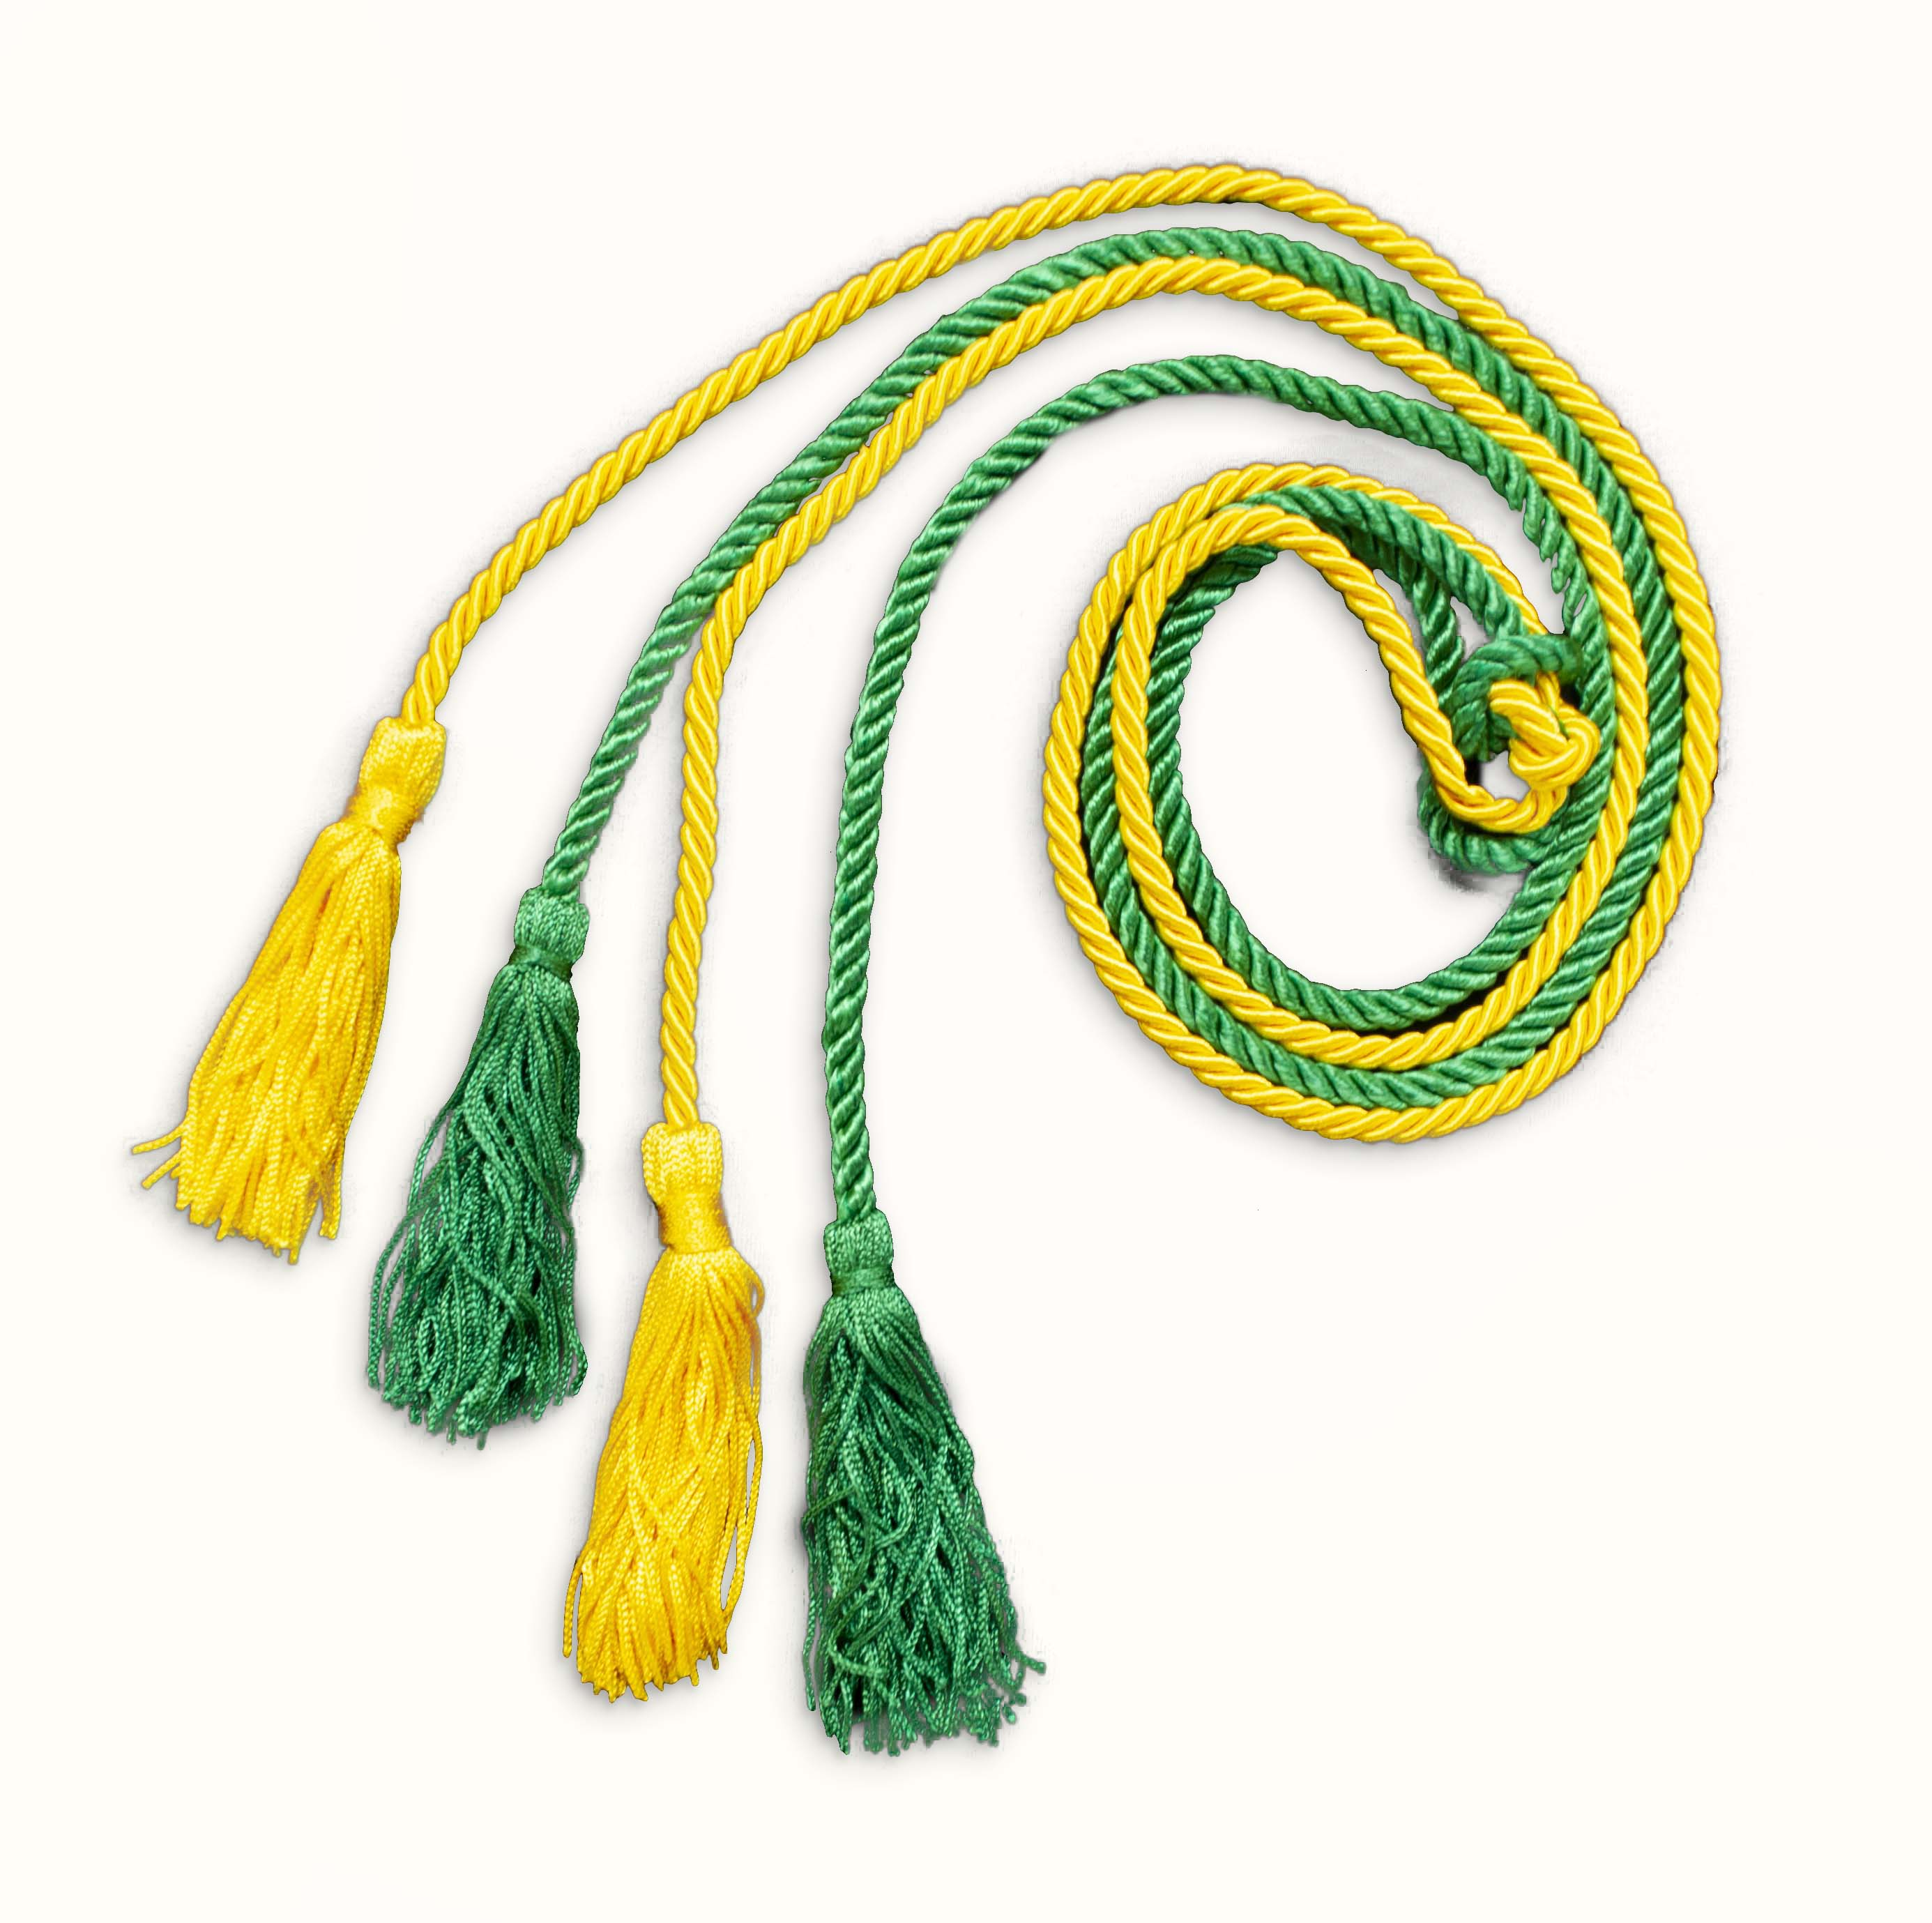 Green and Yellow Honor Cords